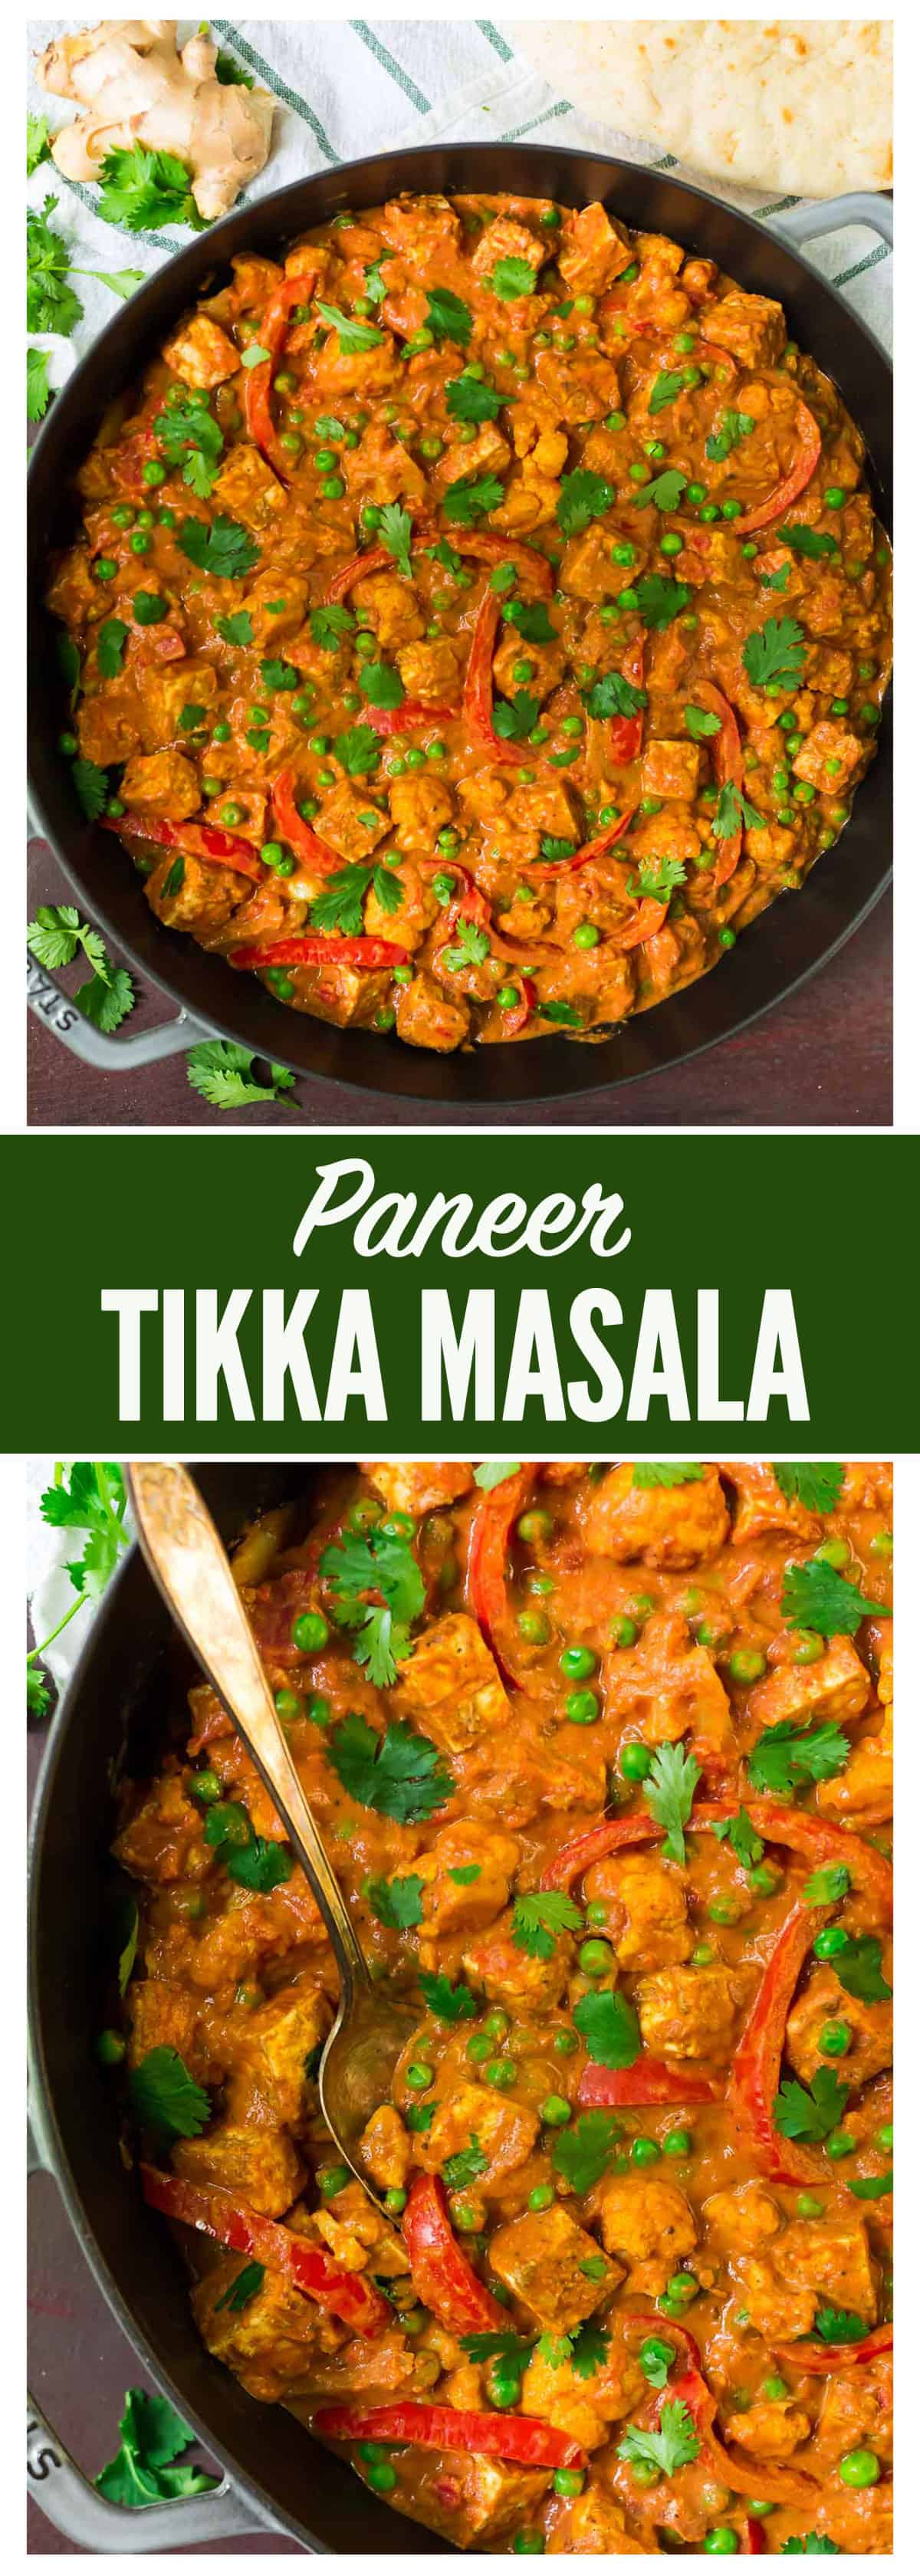 An easy, healthy recipe for the popular Indian restaurant dish Paneer Tikka Masala (spiced Indian cottage cheese with masala gravy). A rich, filling vegetarian dish that anyone can make at home! #indian #masala #healthy #recipe #paneer